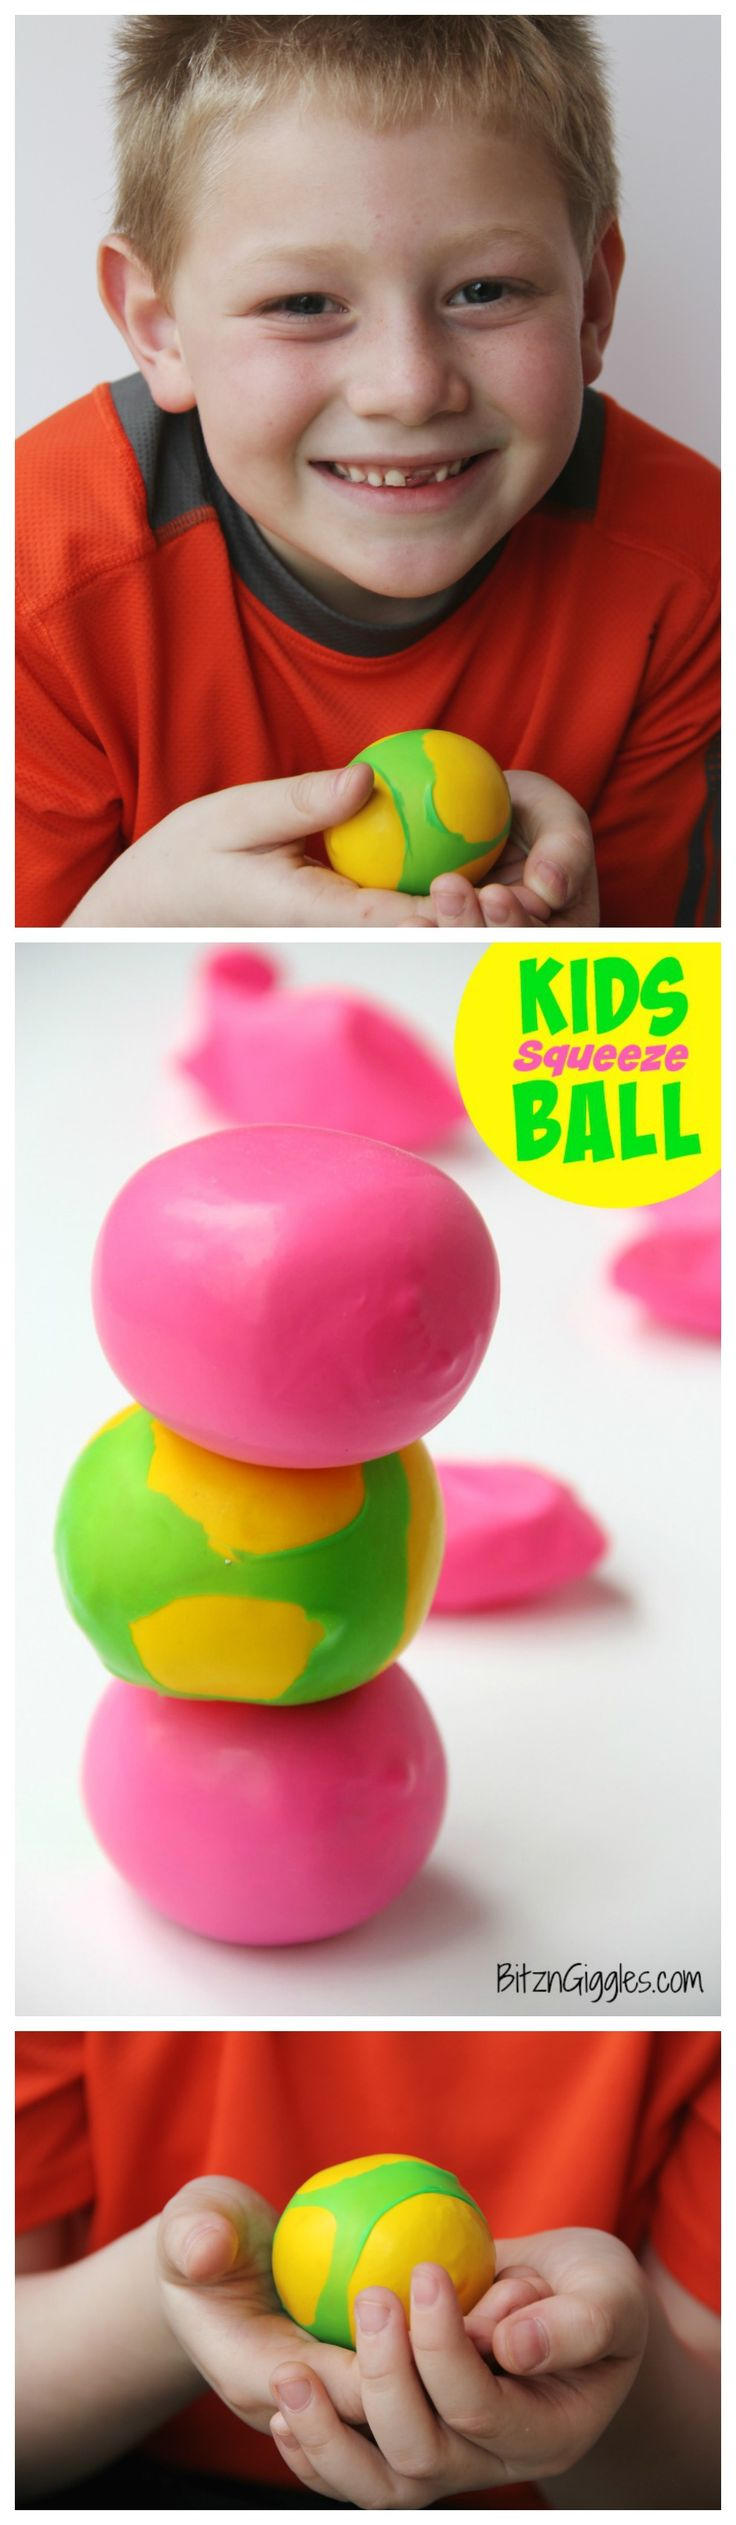 Kids Squeeze Ball - Stress ball, squishy ball whatever you'd like to call it. This toy keeps kids busy for hours and they are simple to make!